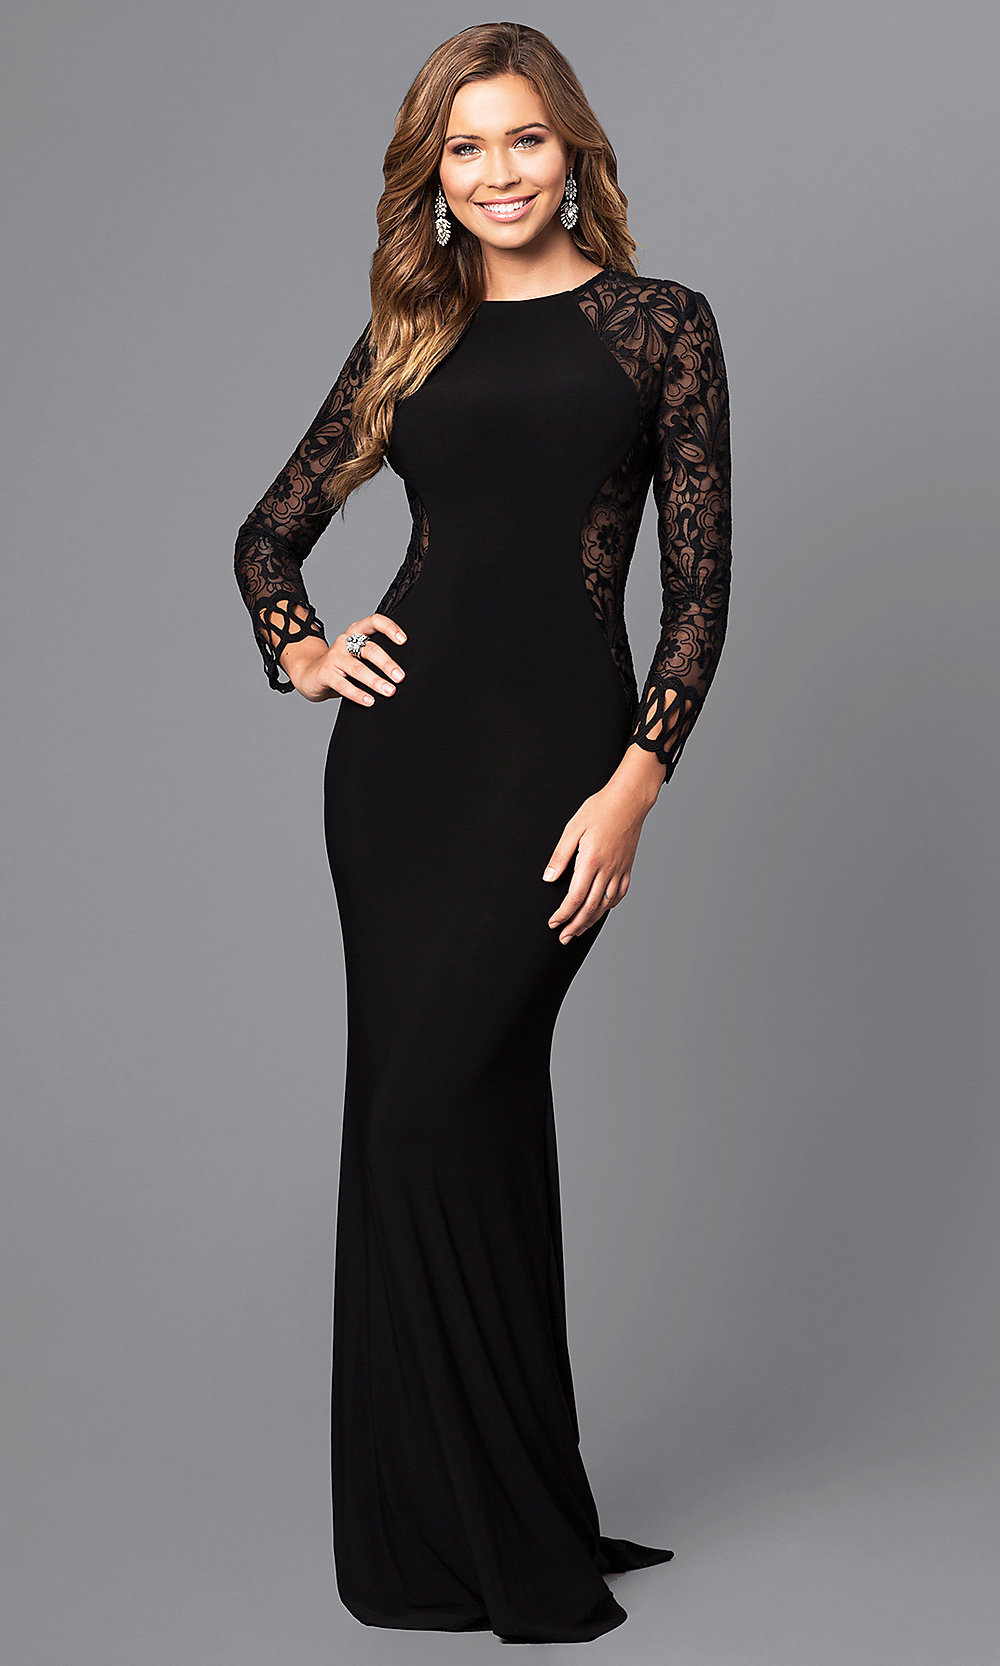 https://img.promgirl.com/_img/PGPRODUCTS/1588772/1000/black-dress-ZG-30931-a.jpg